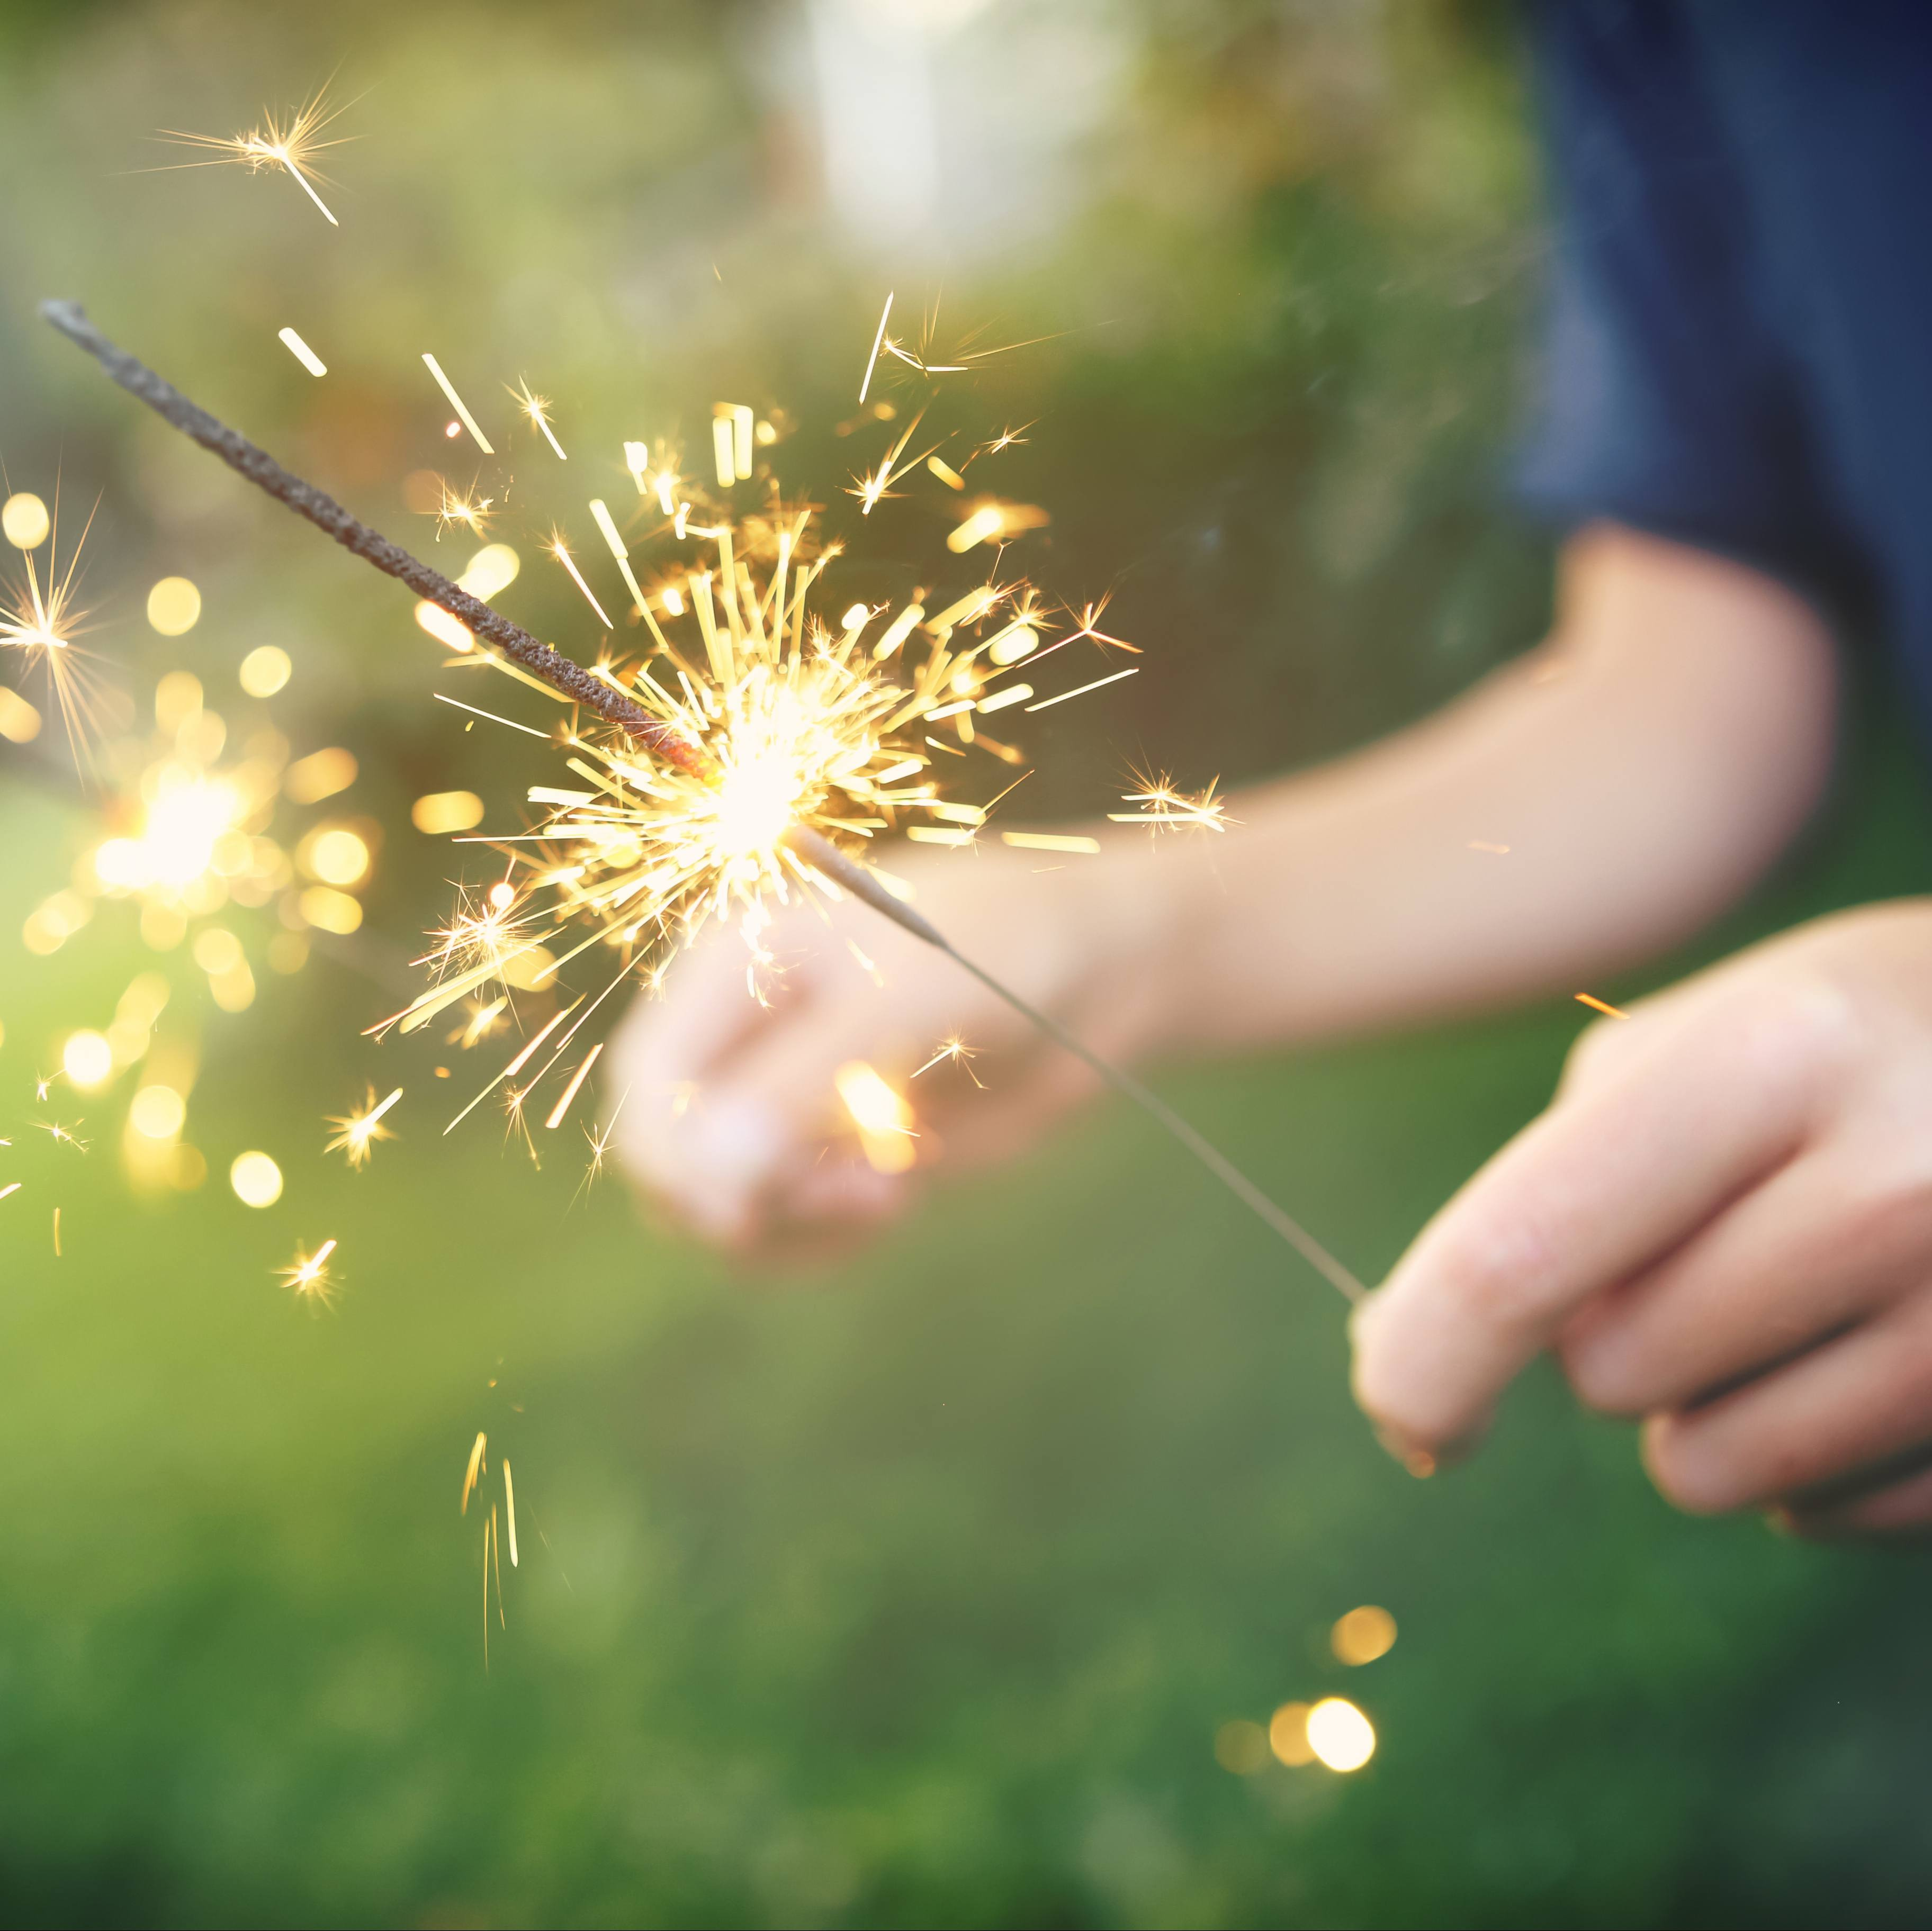 a young person lighting a fireworks sparkler in their hands